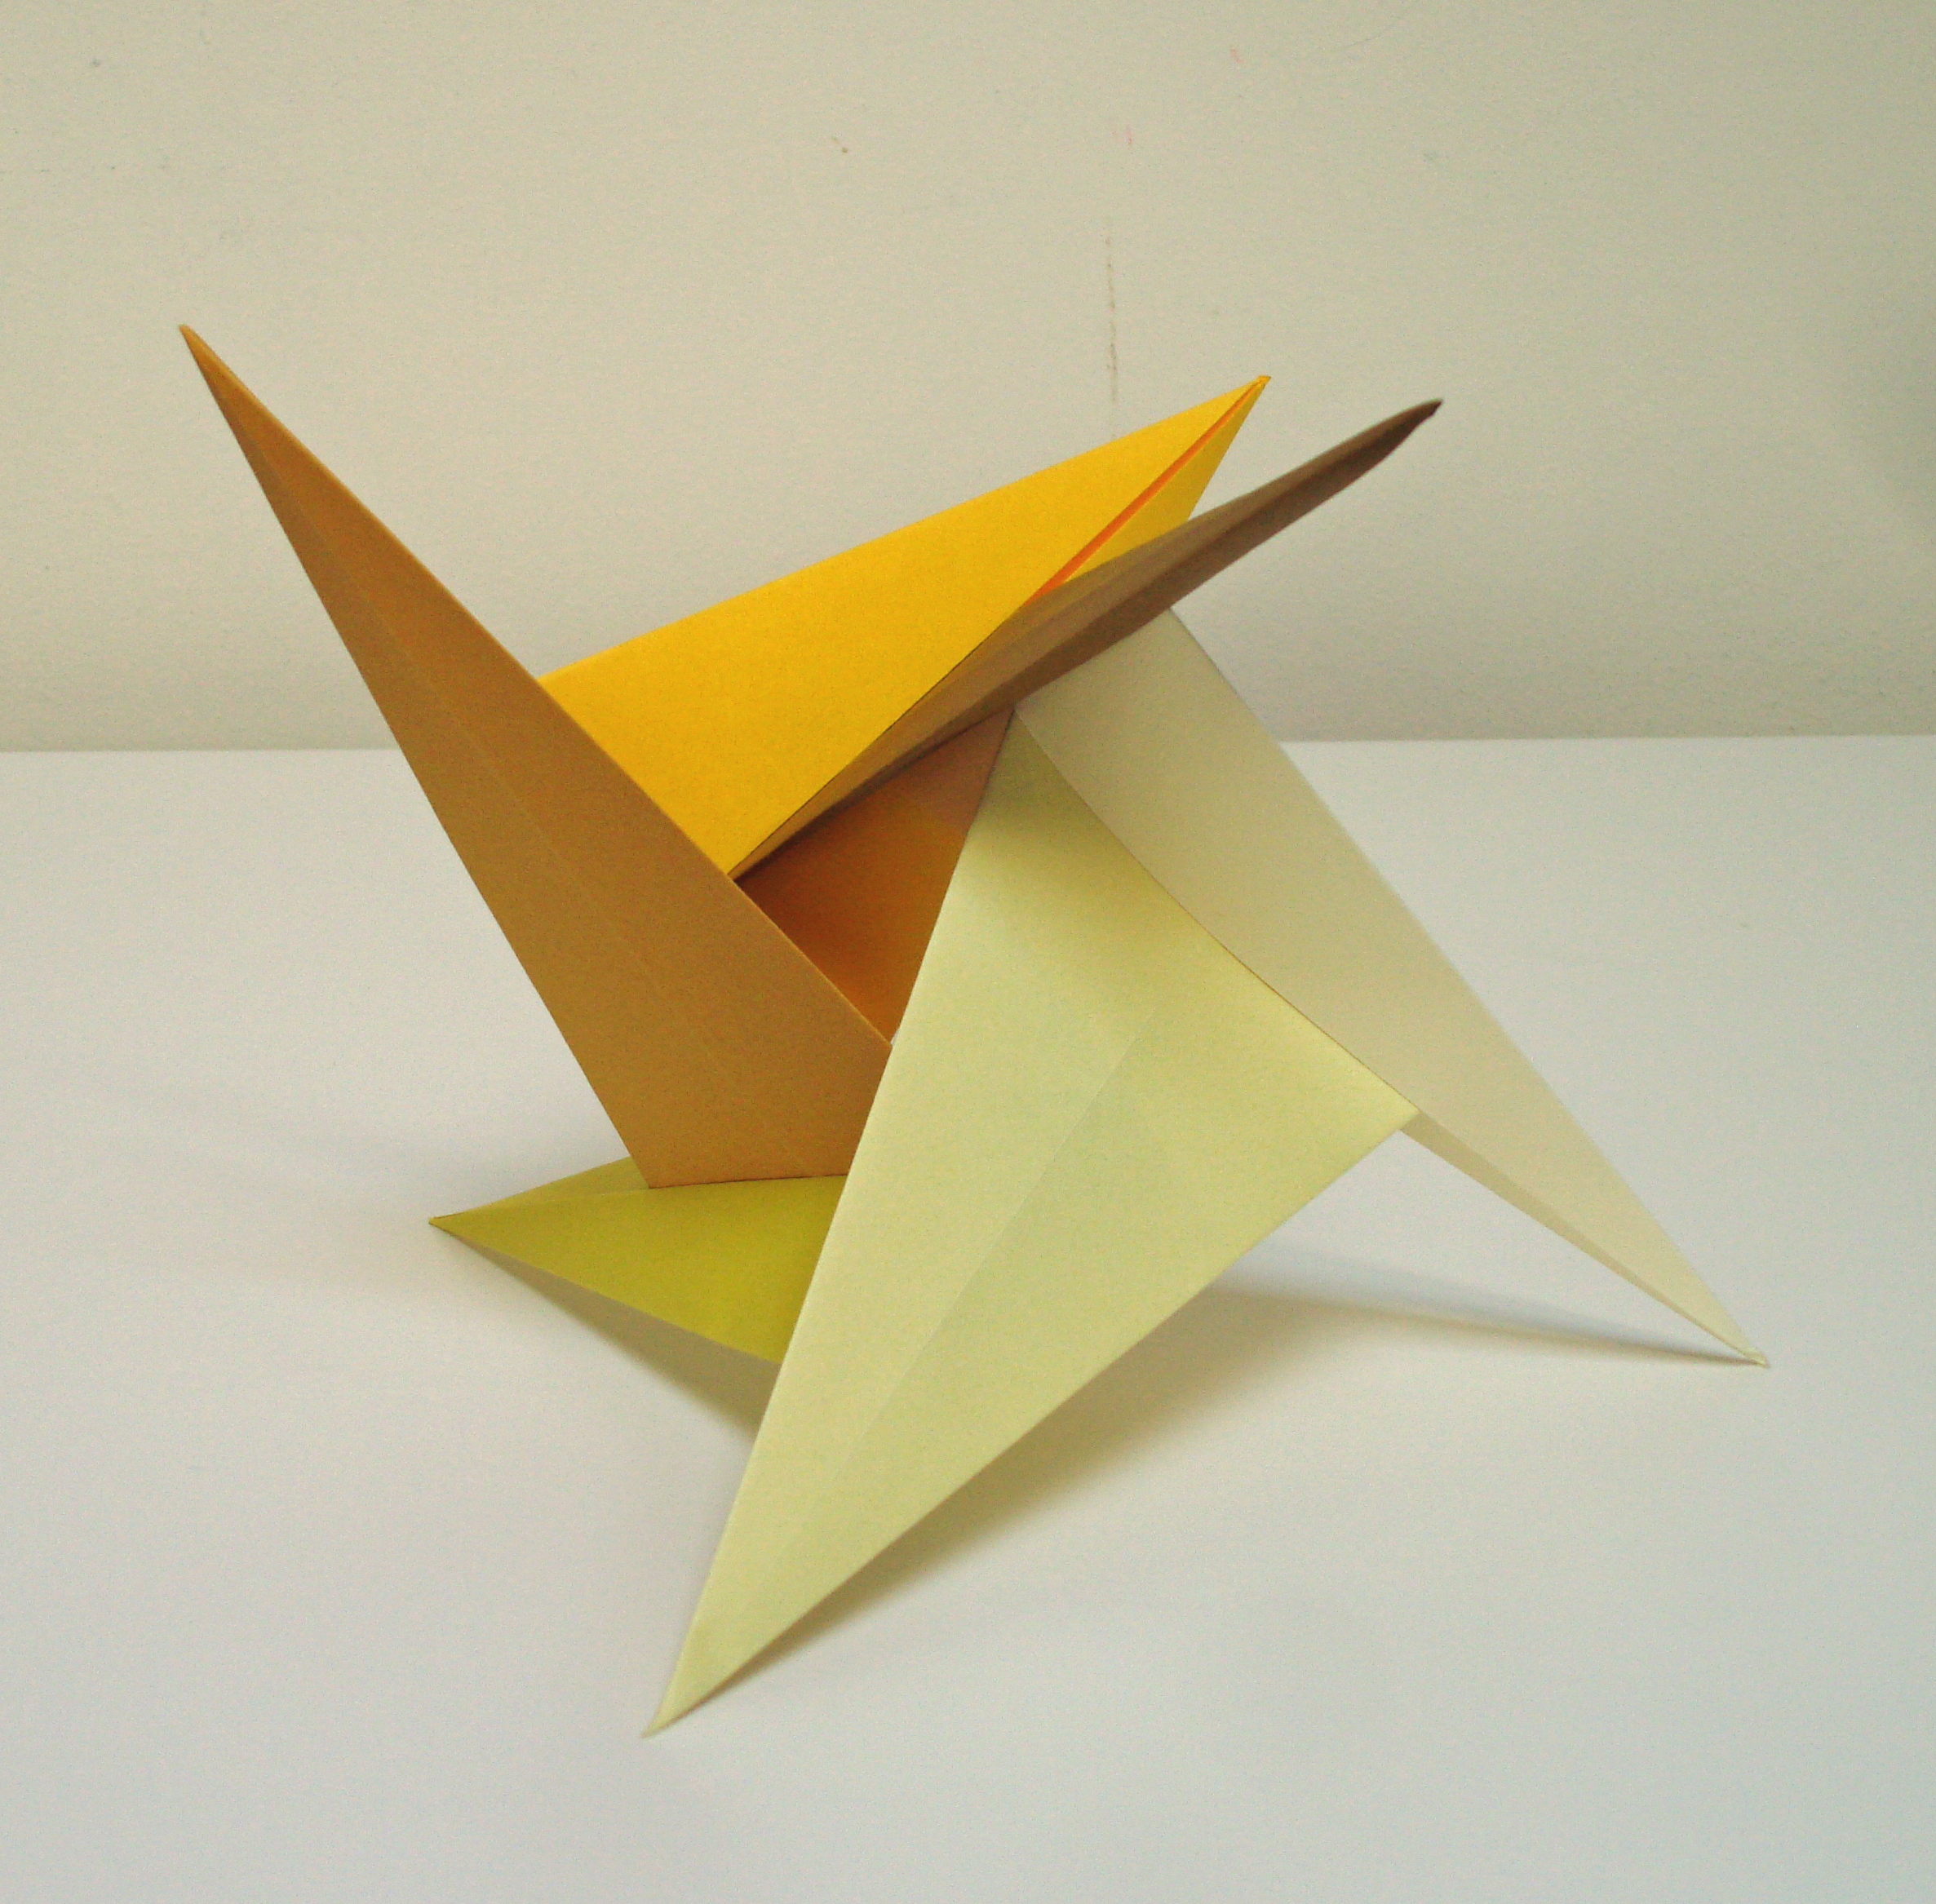 Diagrams David Brill Modular Free Instructing You How To Fold Unit Origami Models